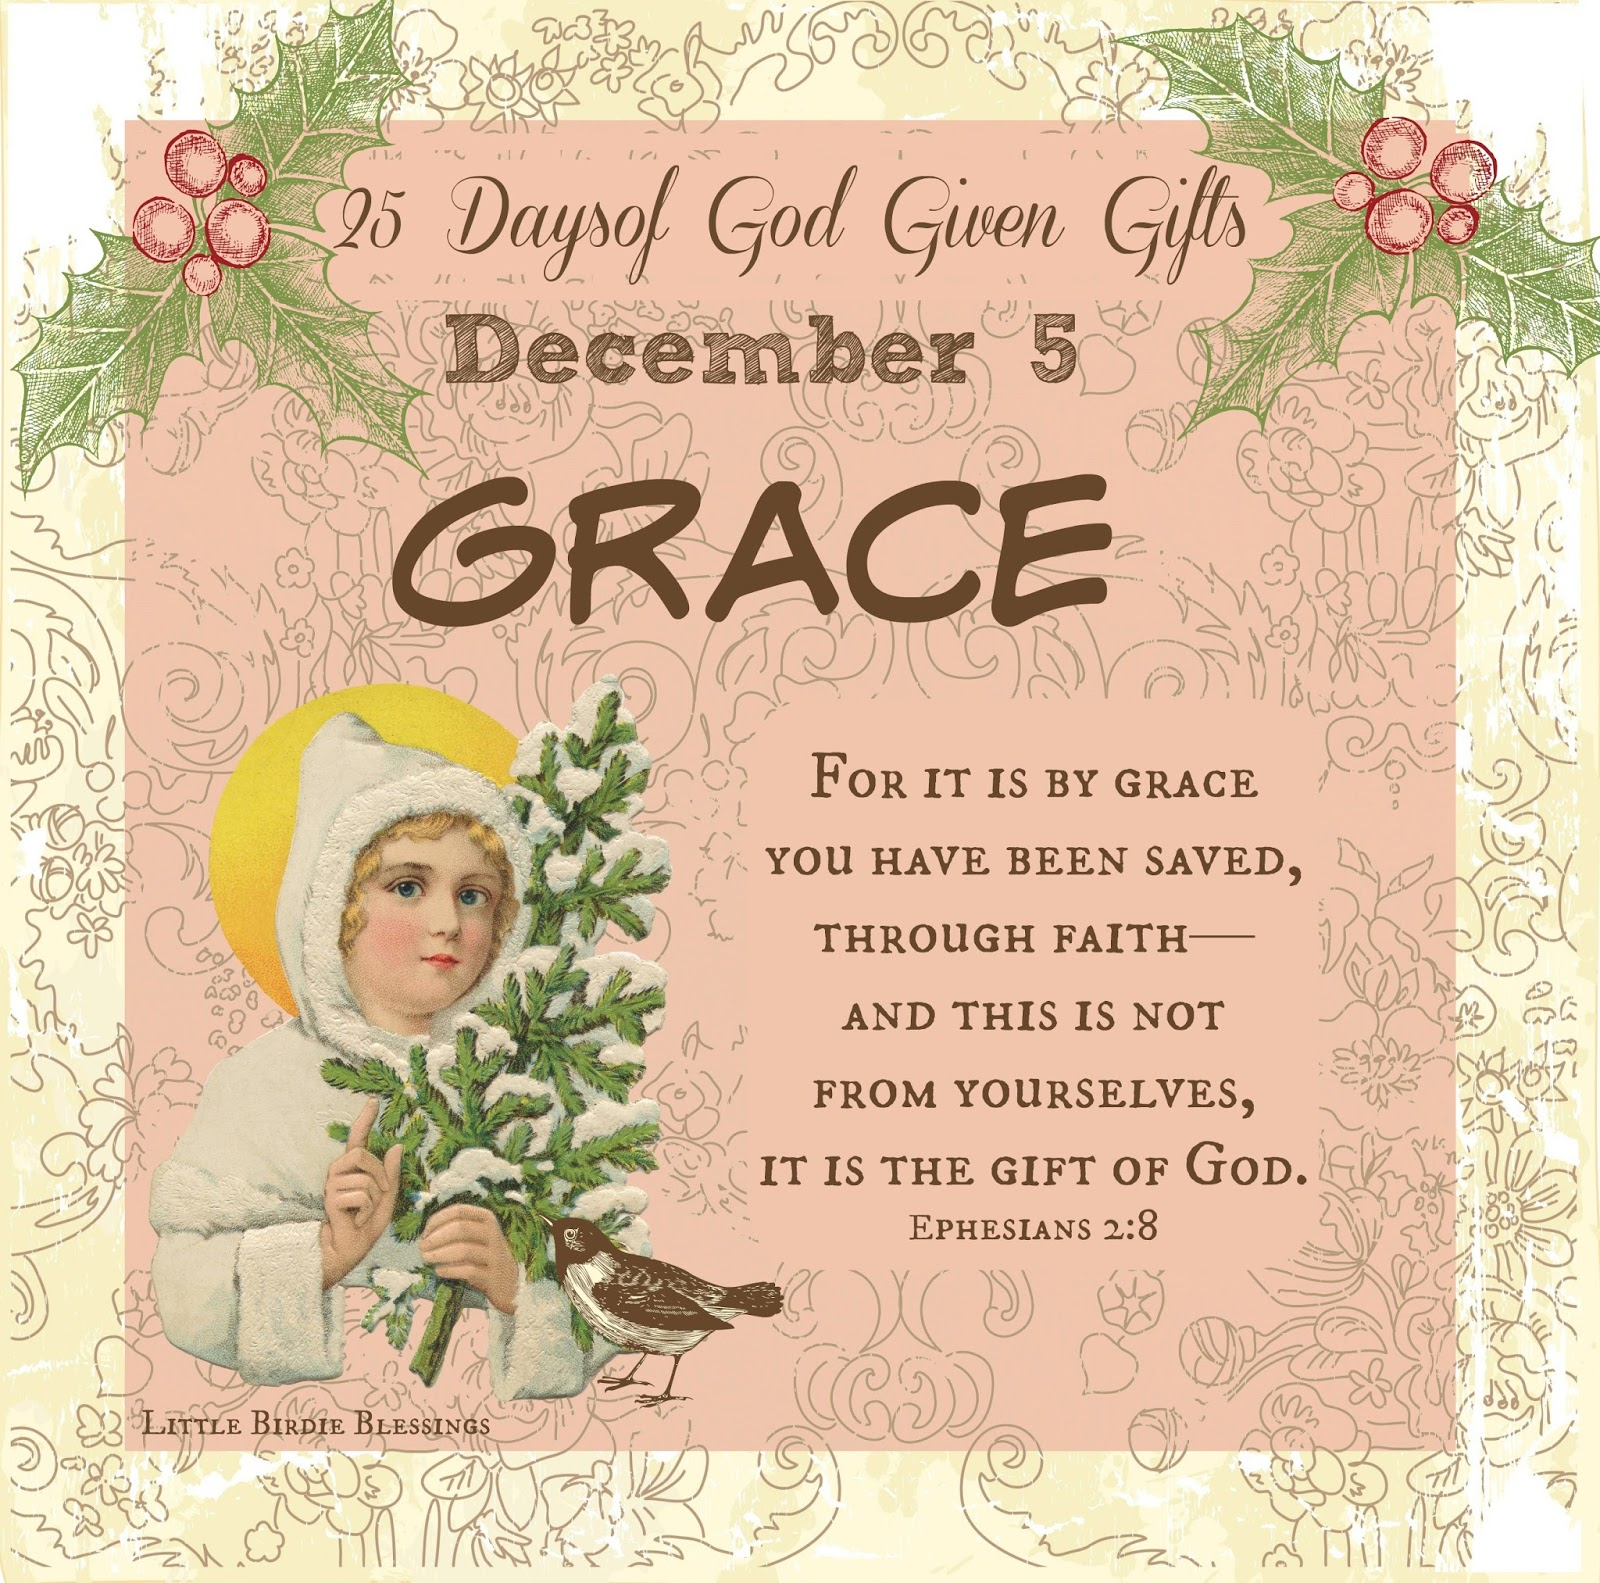 Little Birdie Blessings : 25 Days God Given Gifts - Day 5